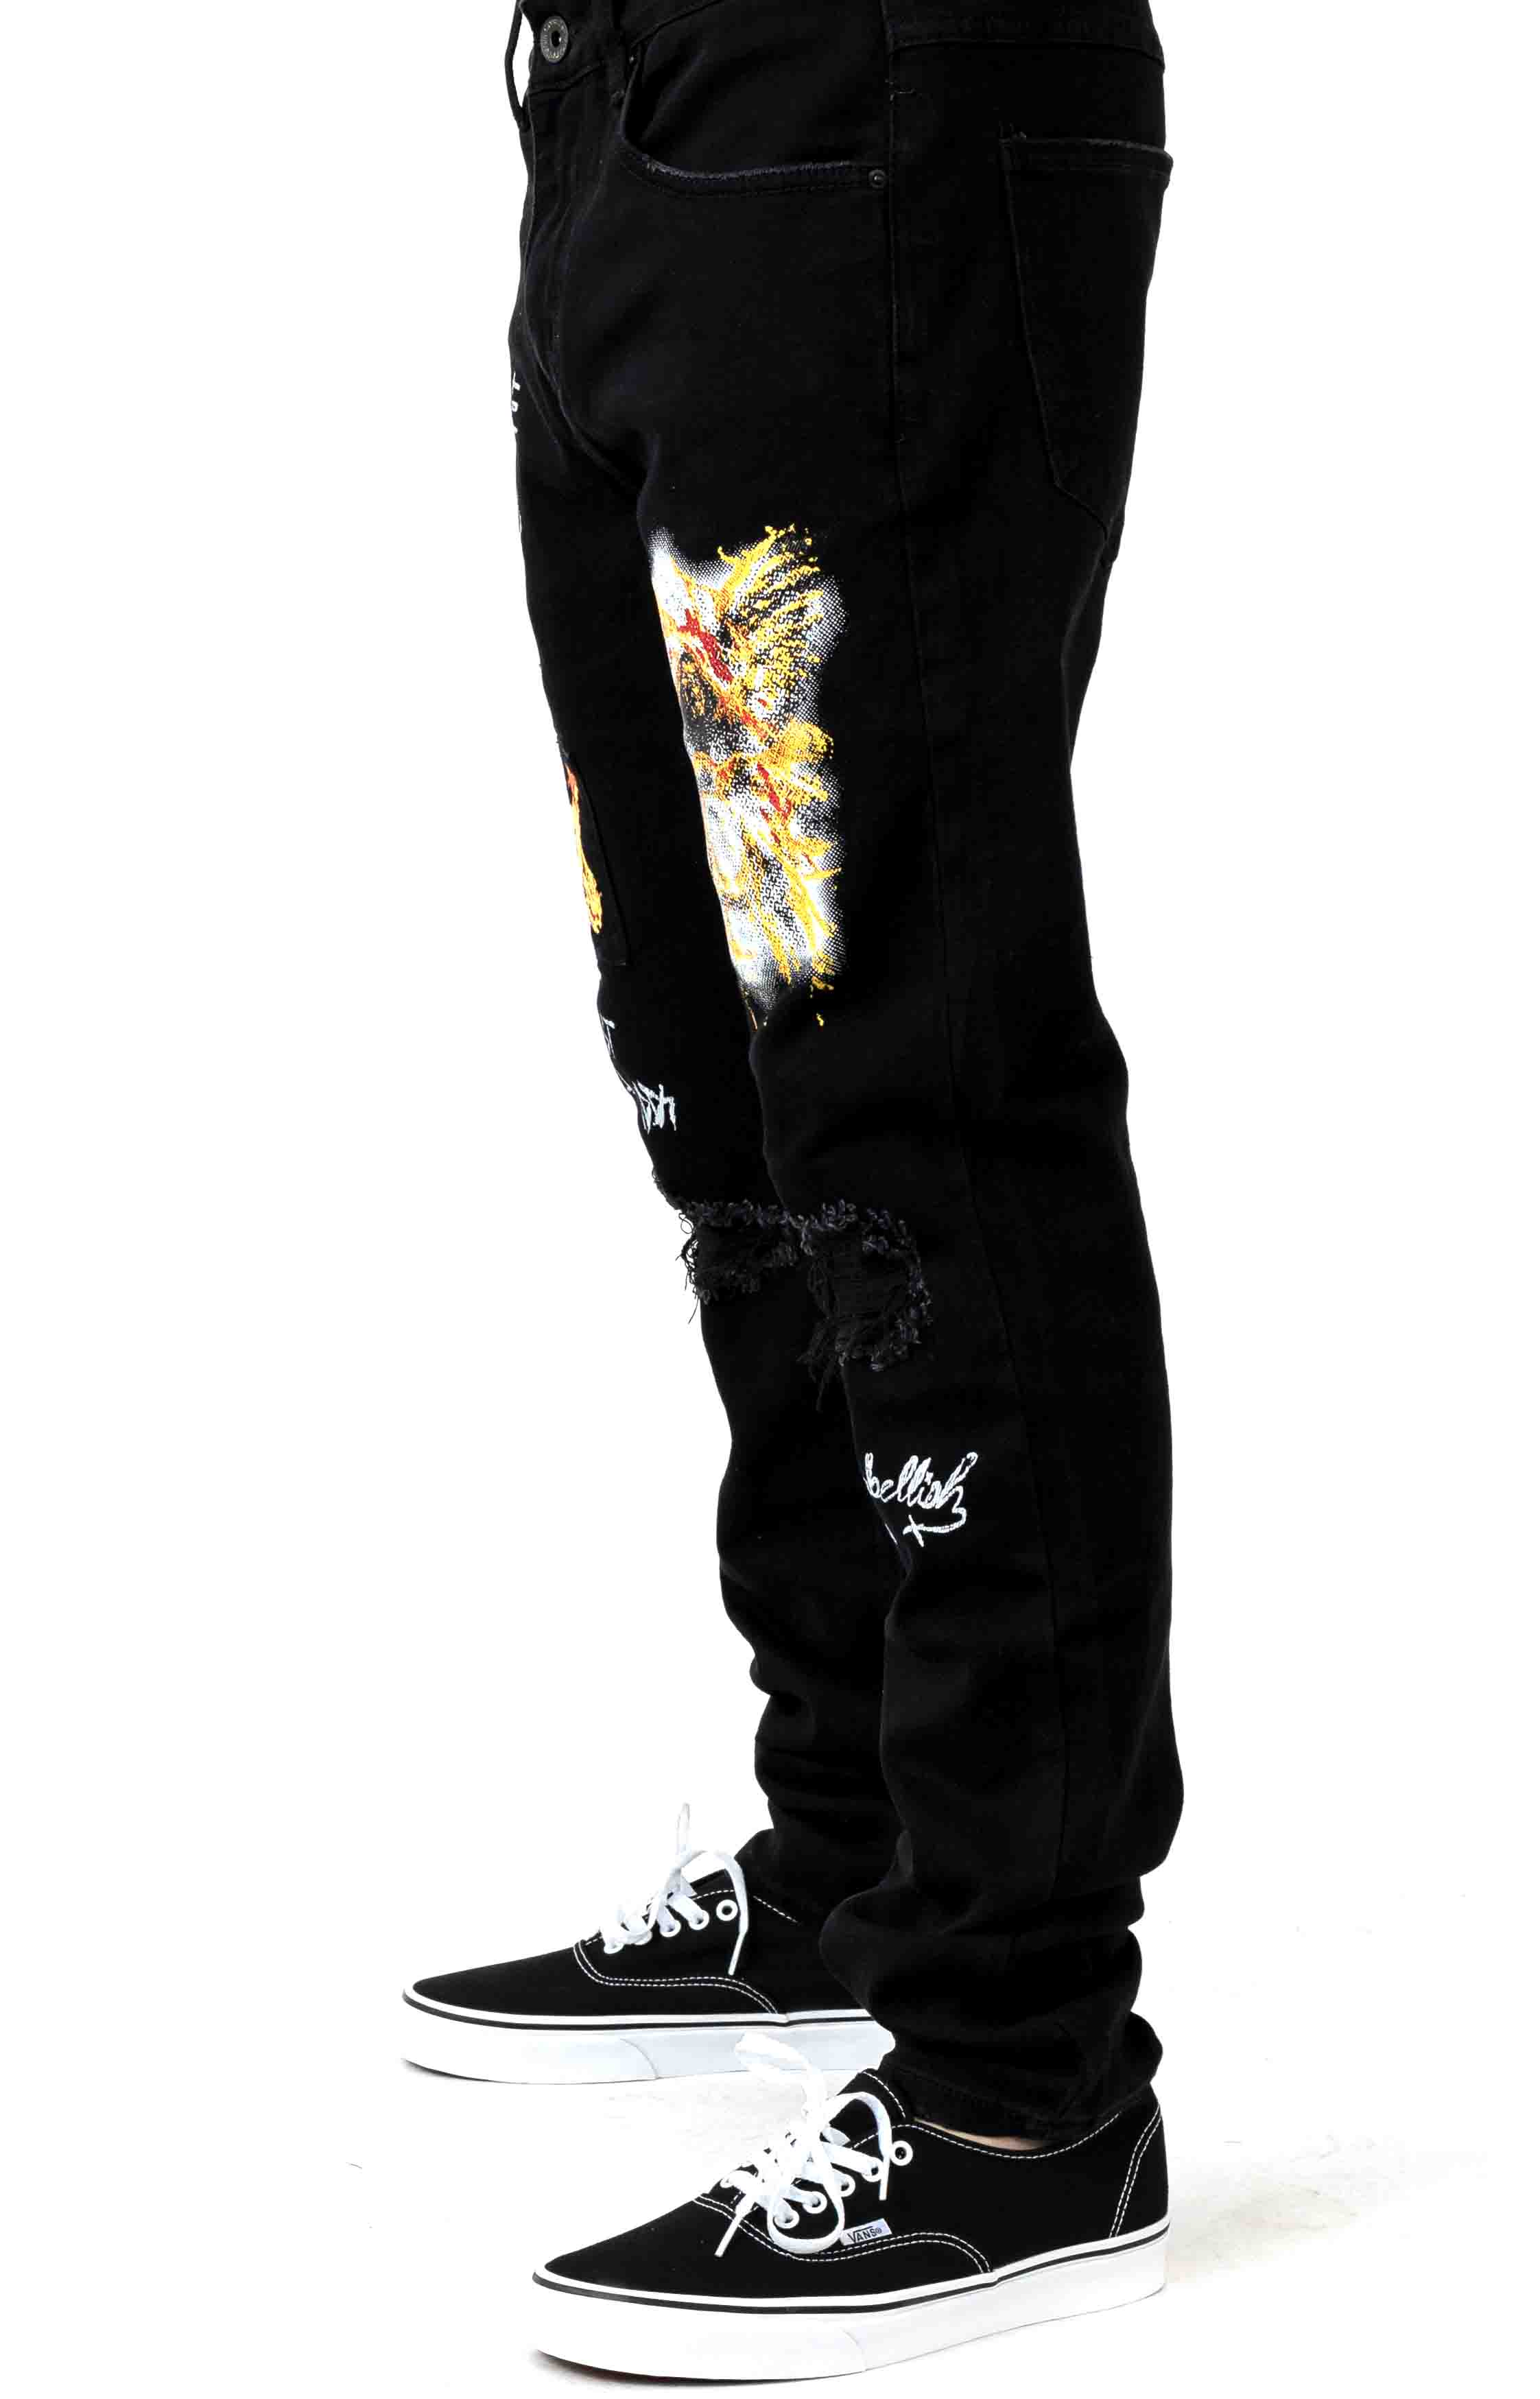 (CRYH19-140) Nowell Painted Denim Jeans - Black Painted